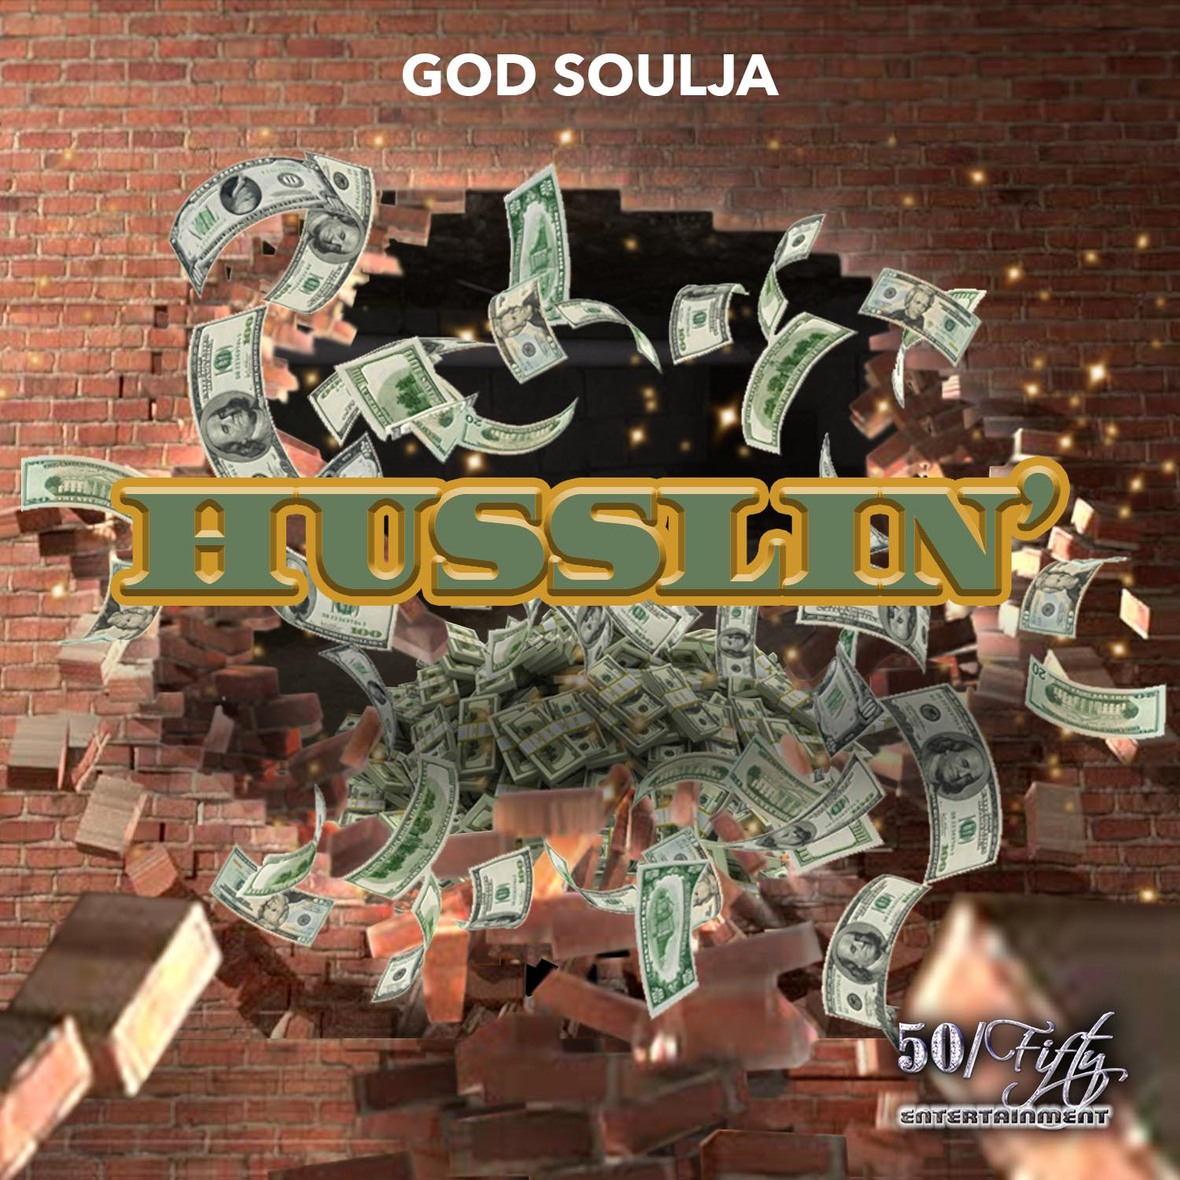 Husslin cover art  2